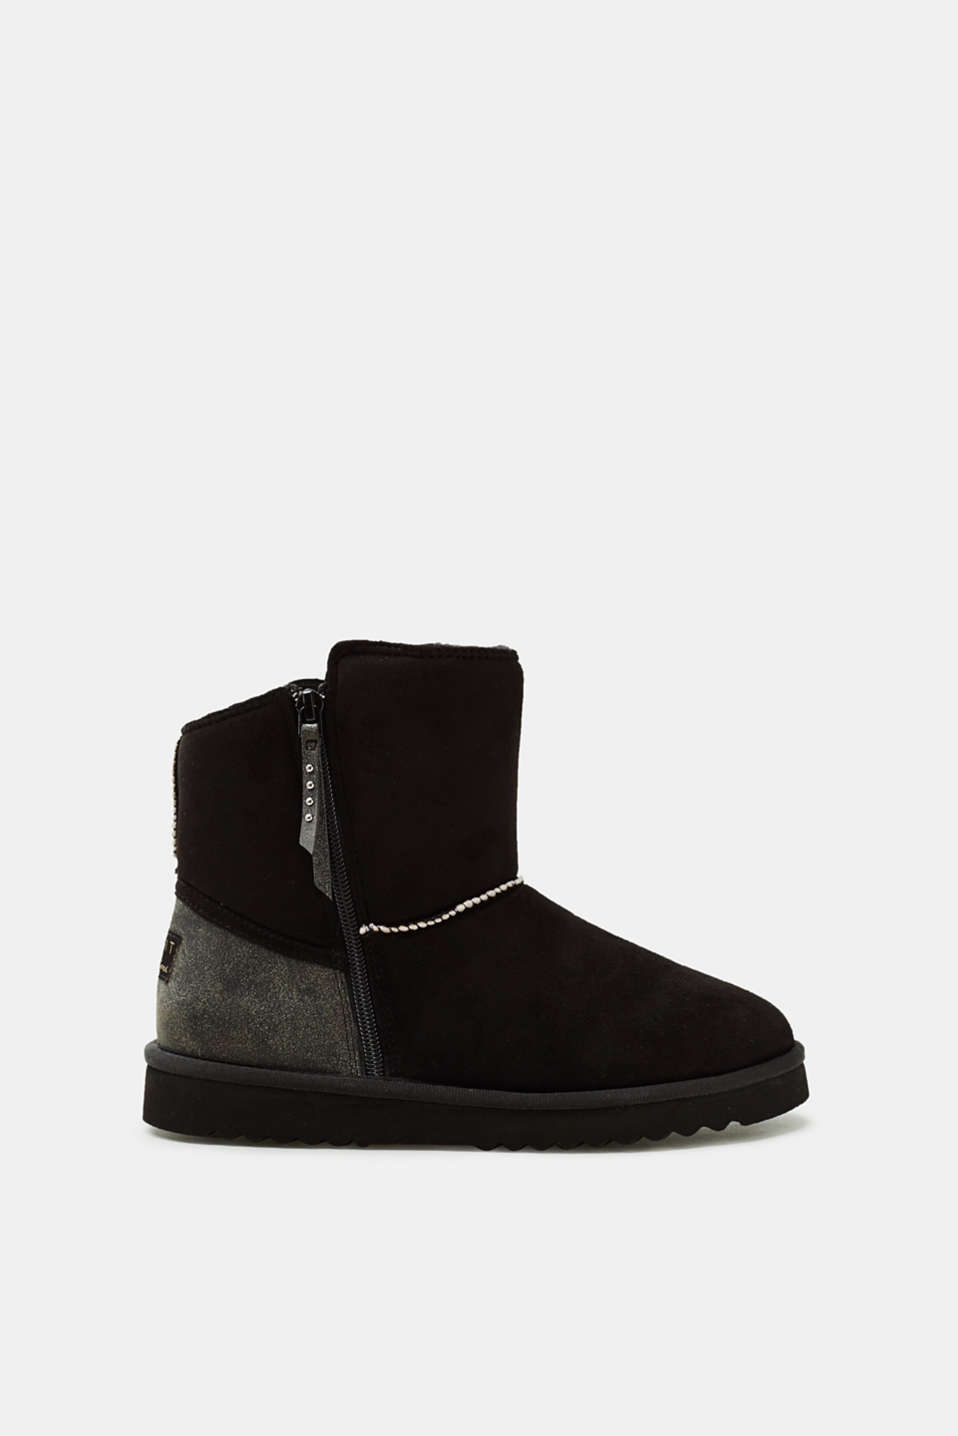 Esprit - Short winter ankle boot with faux fur lining